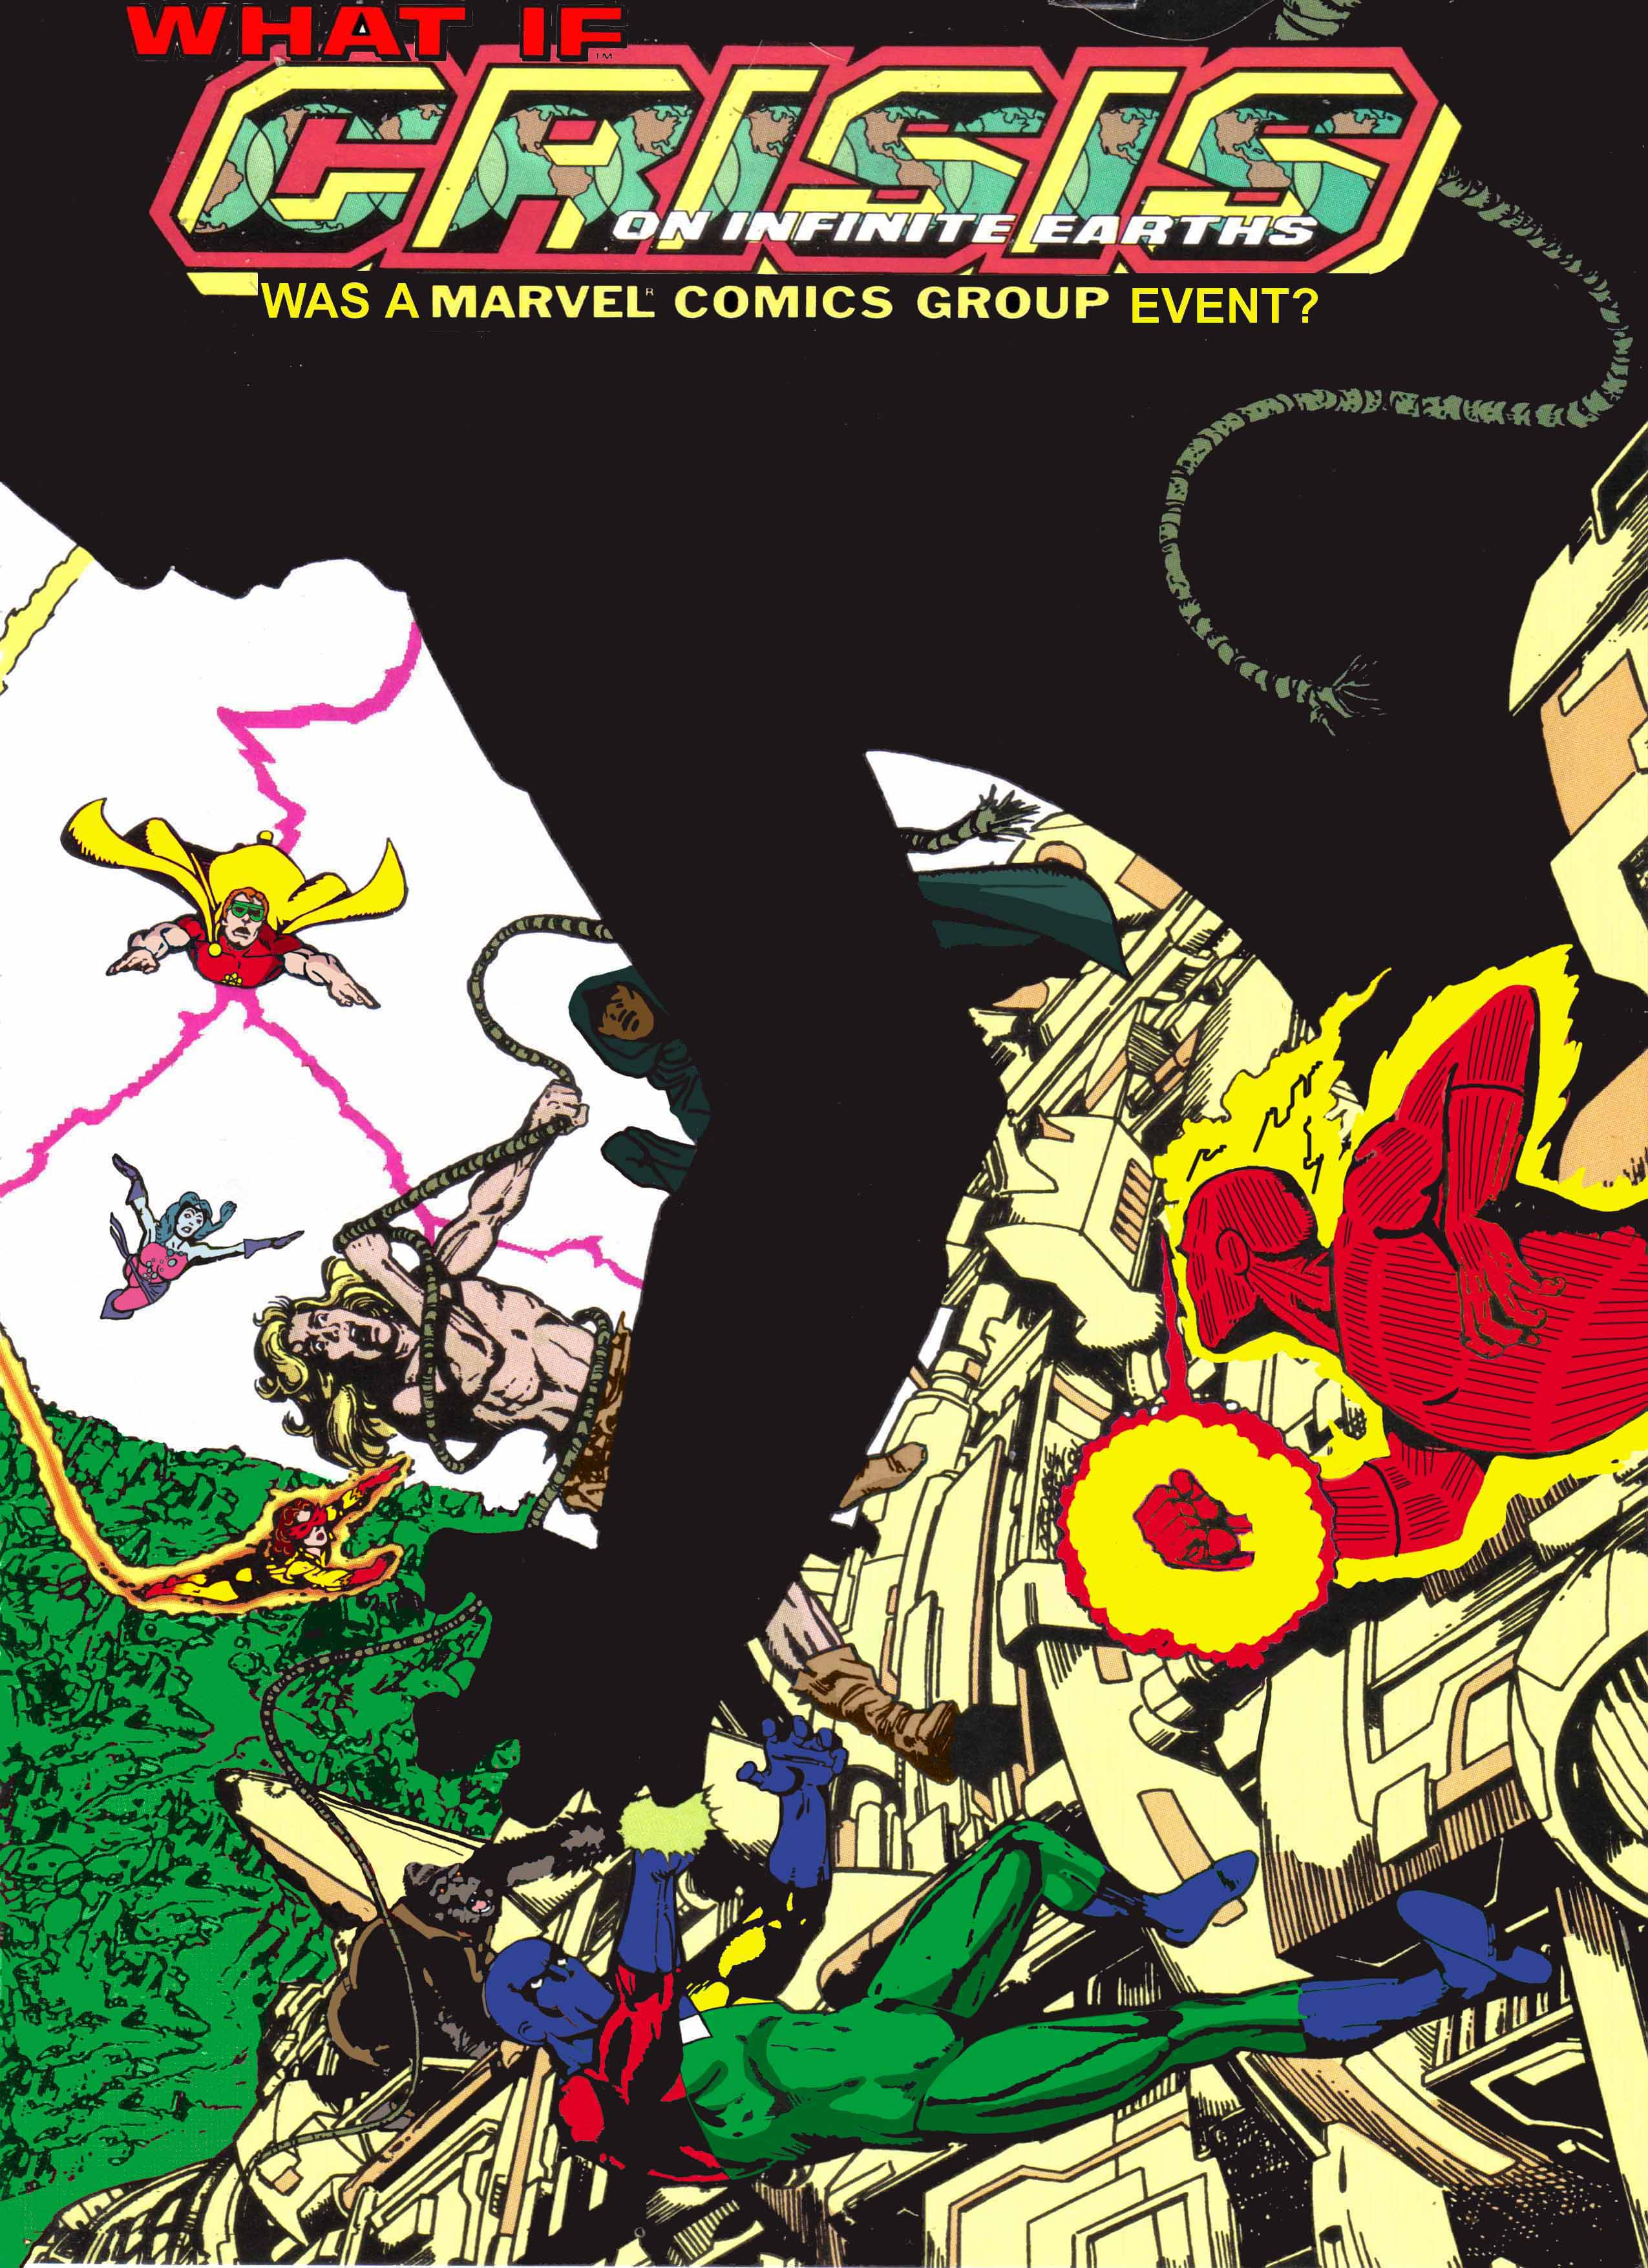 Coming Soon: What If... Crisis on Infinite Earths was a Marvel Comics Group Event? Book 2